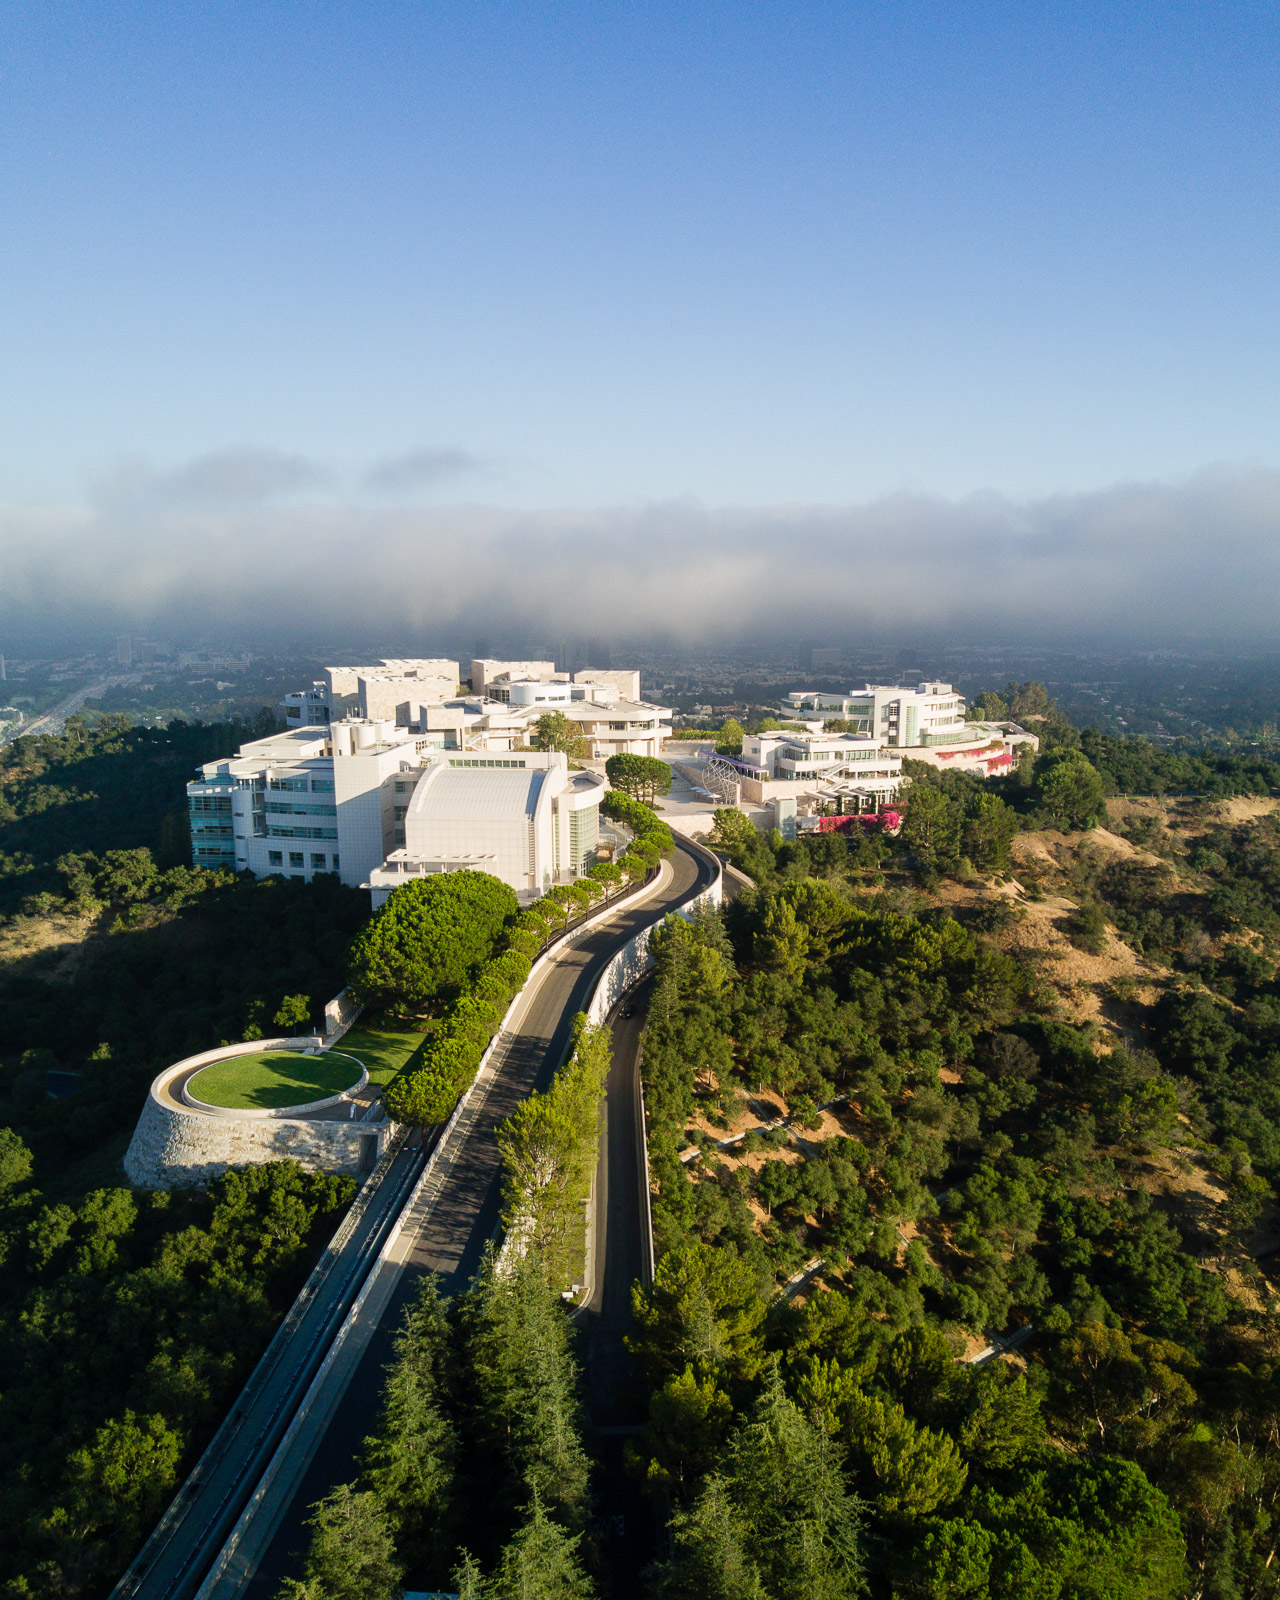 Aerial view of the Getty Center in Brentwood designed by Richard Meier